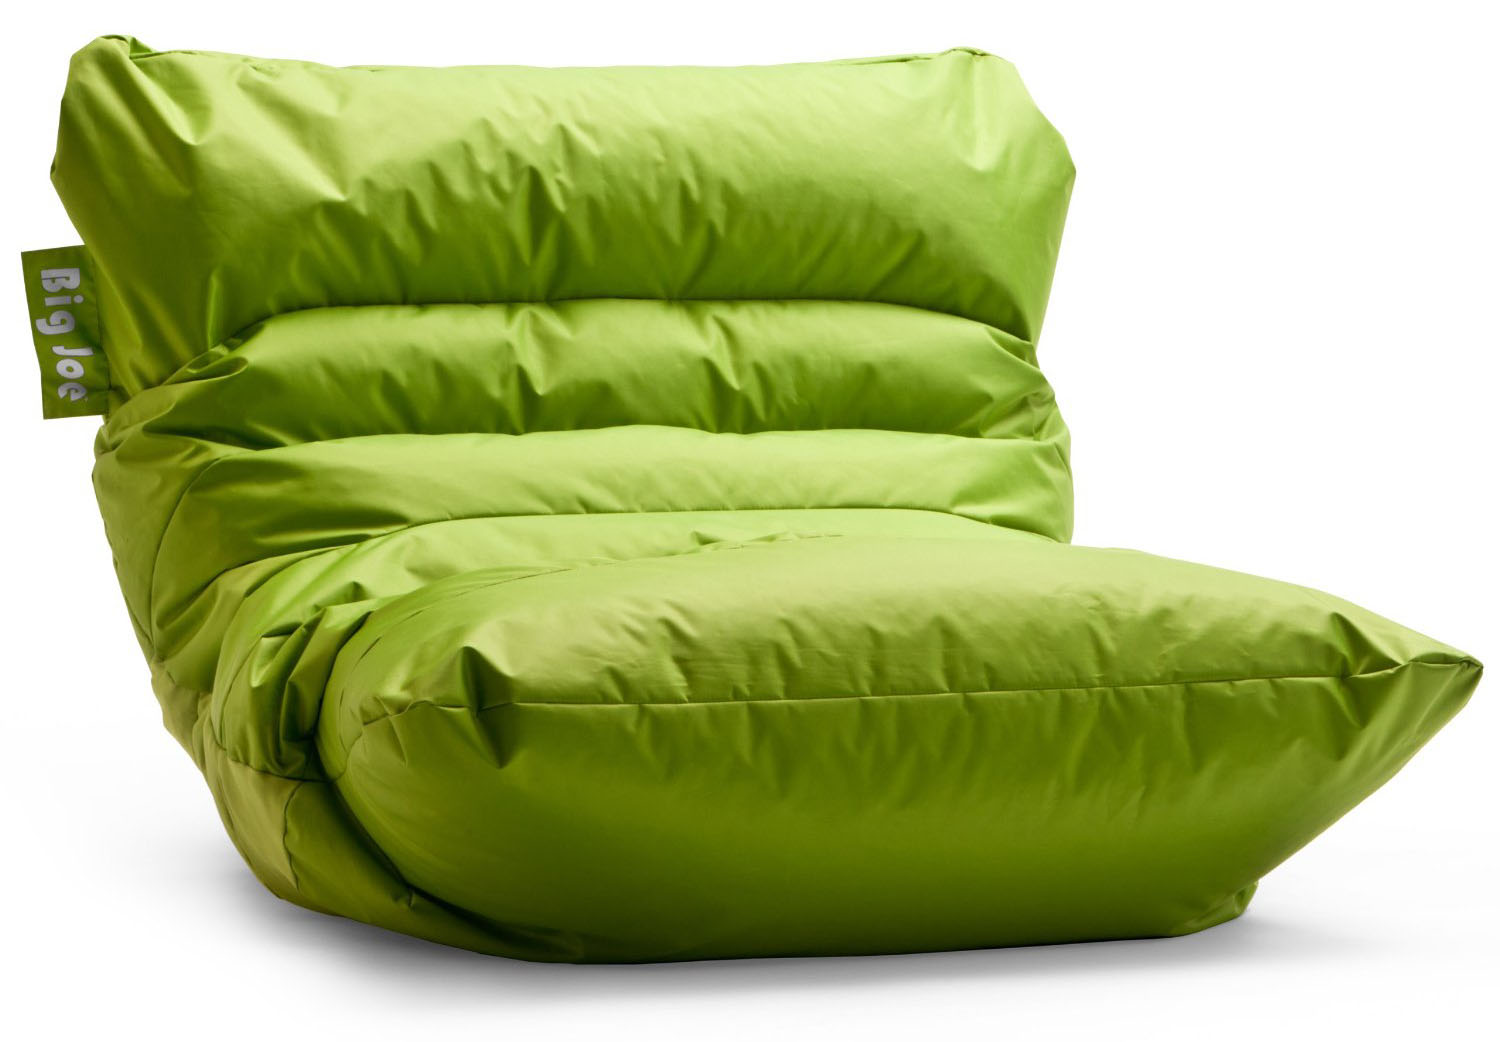 Bean Bag Chairs For Adults And Kids